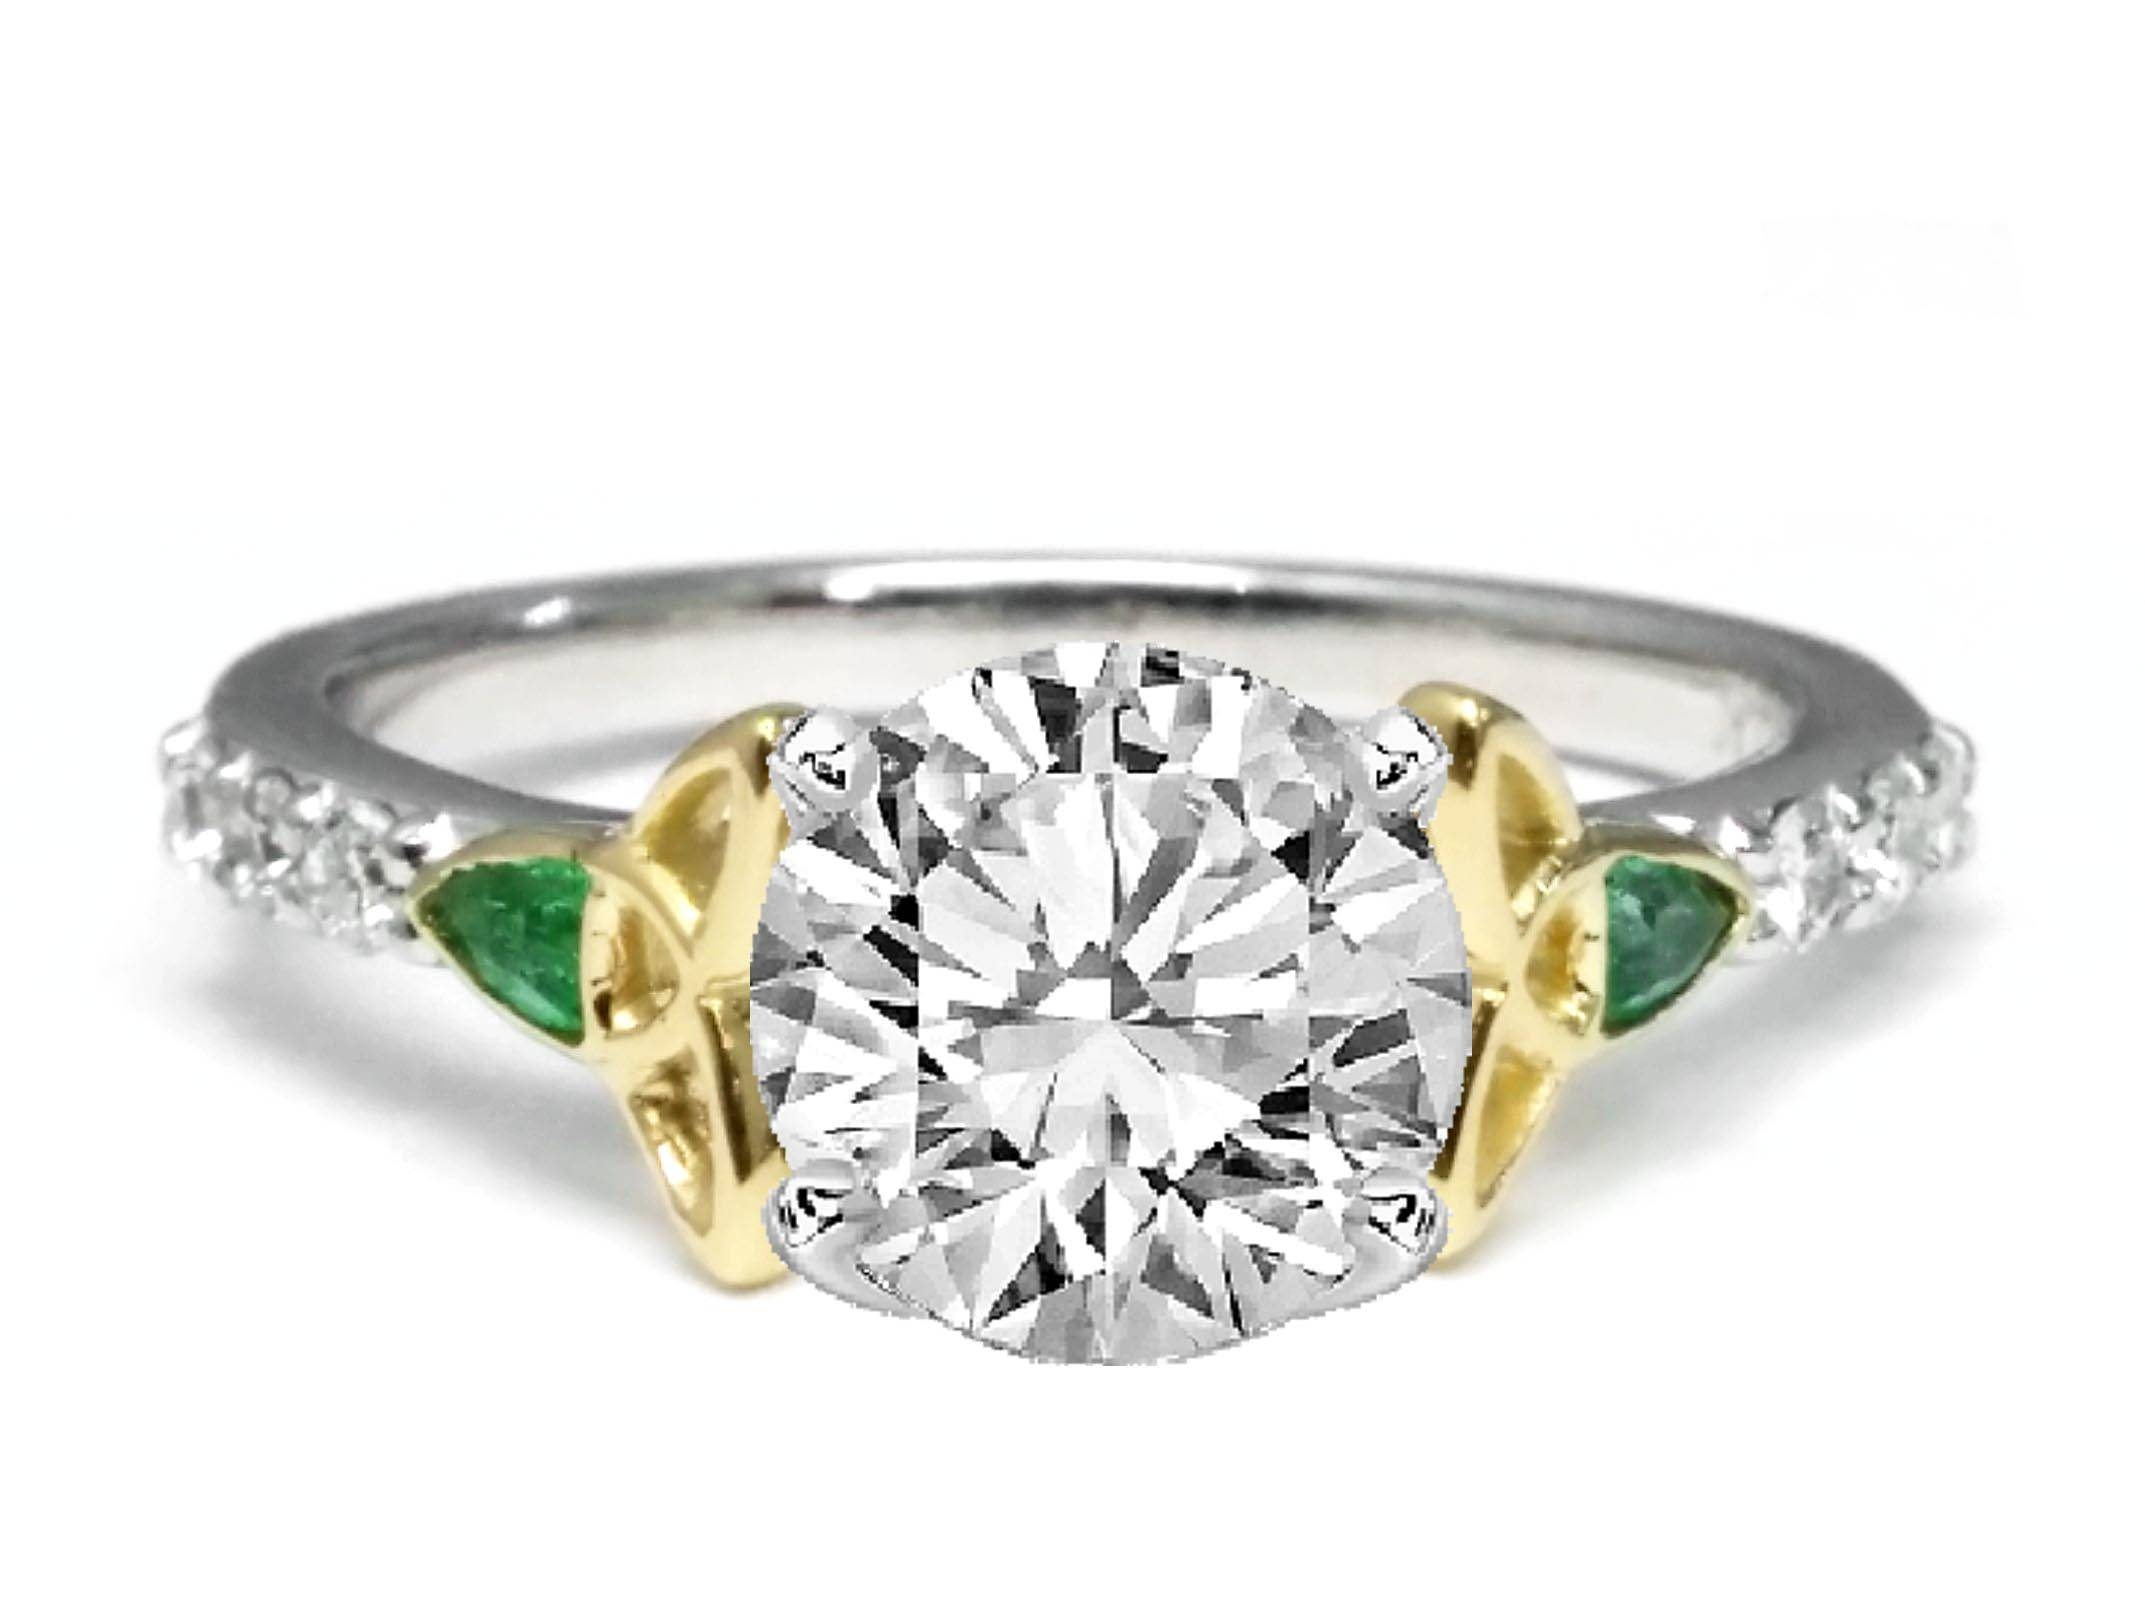 Celtic – Engagement Rings From Mdc Diamonds Nyc Regarding Irish Engagement Rings (View 15 of 15)